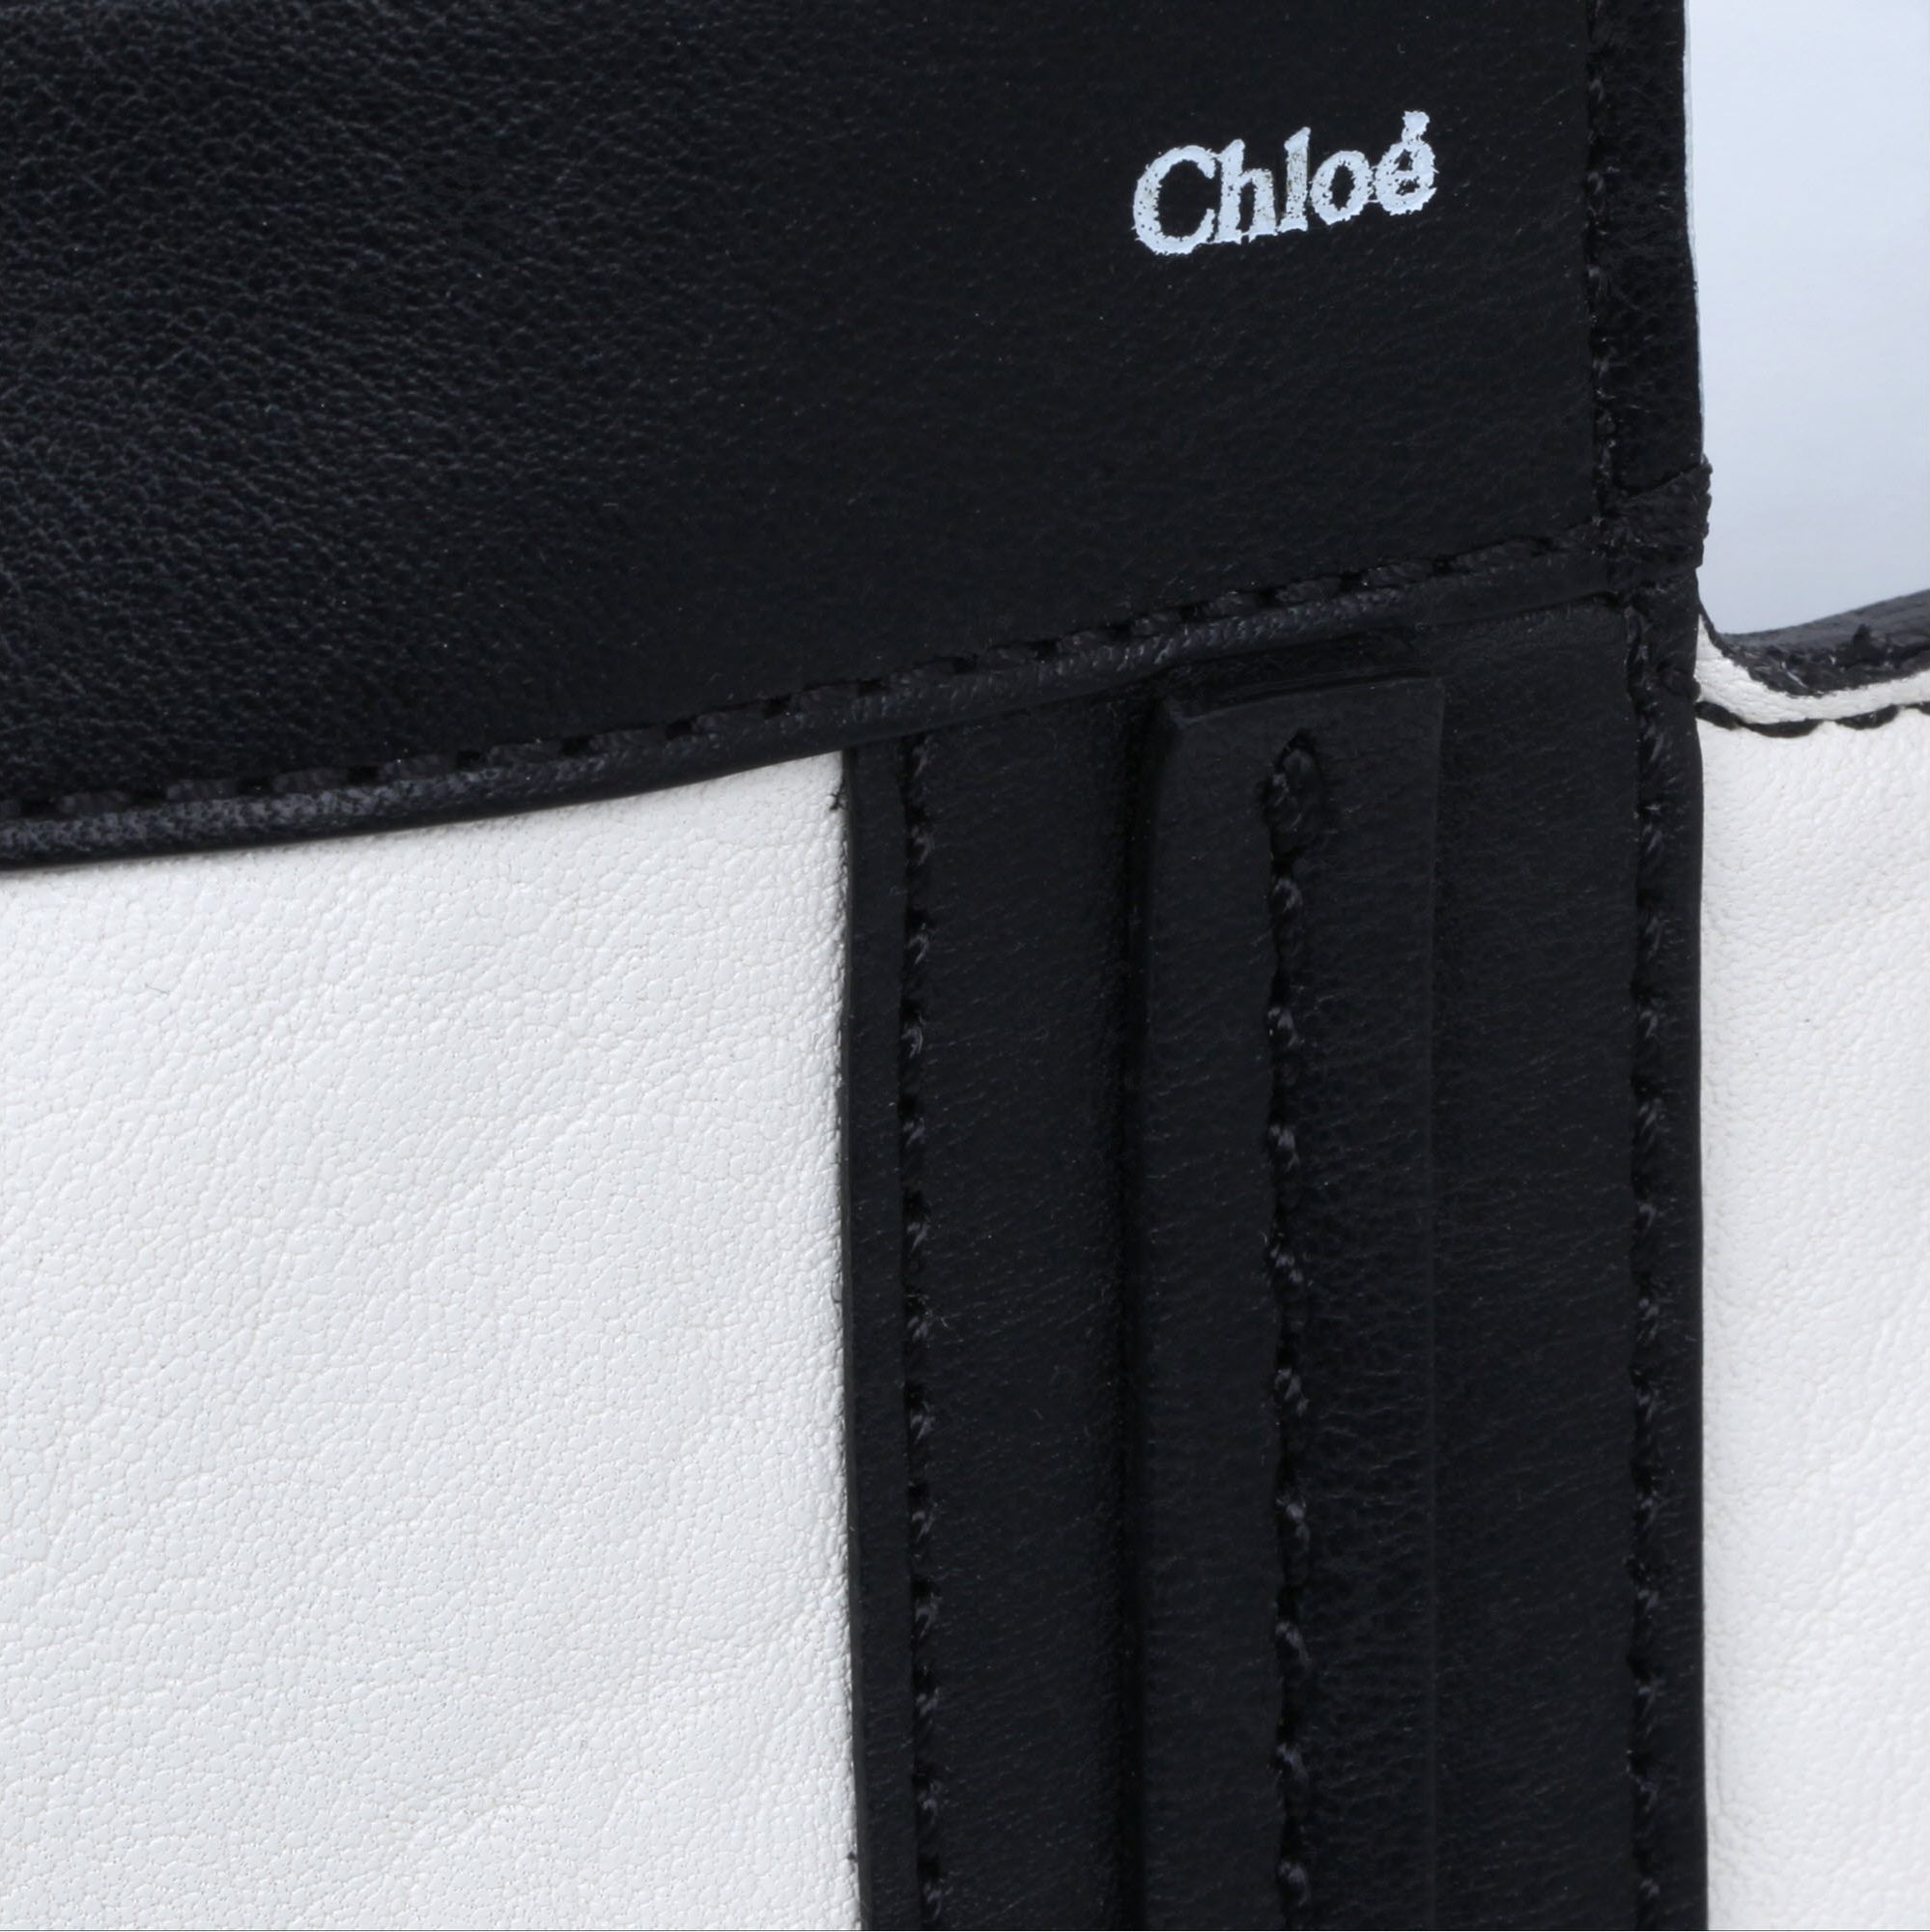 Chloé Alison East West Tote in White (Black)